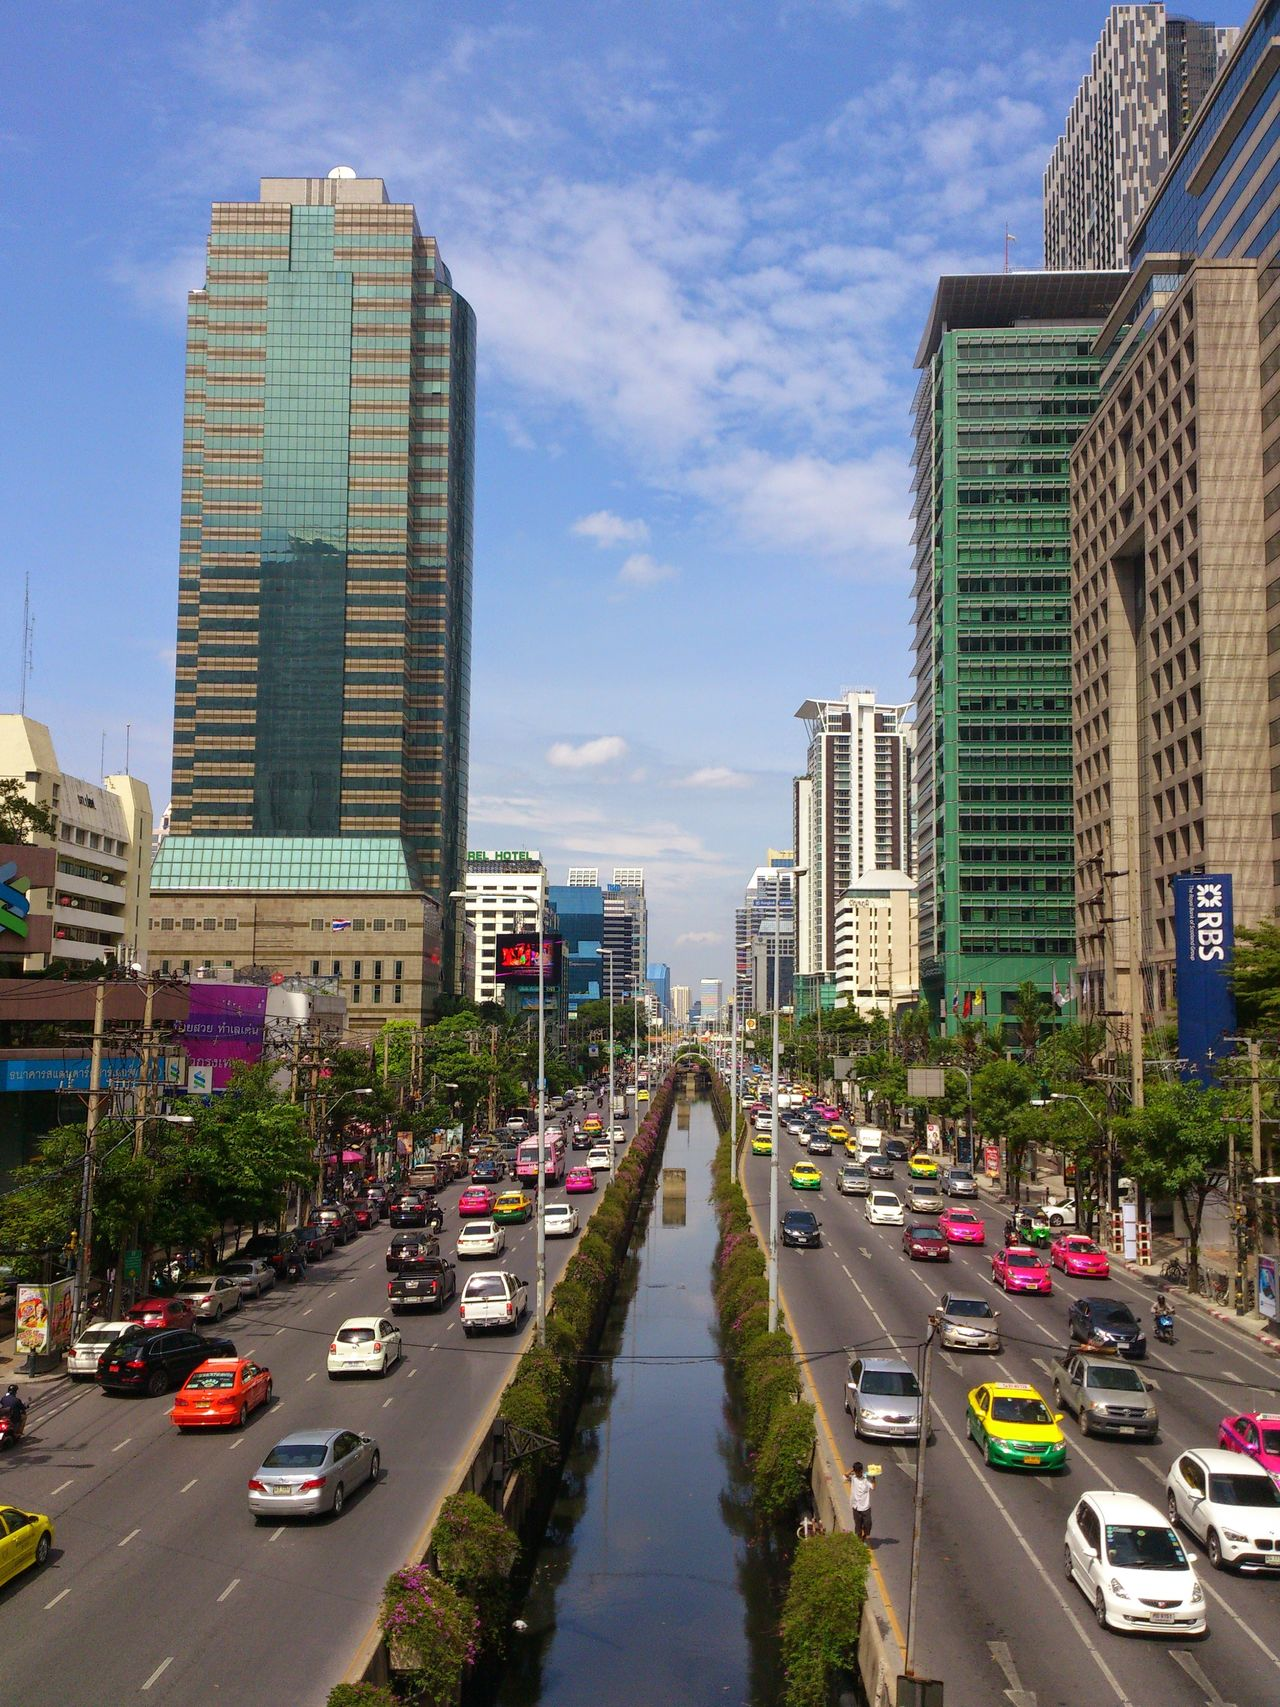 Thailand Bangkok City Architecture Building Exterior Transportation City Street City Life Traffic Outdoors Car Road Day No People Sky Land Vehicle City Cityscape